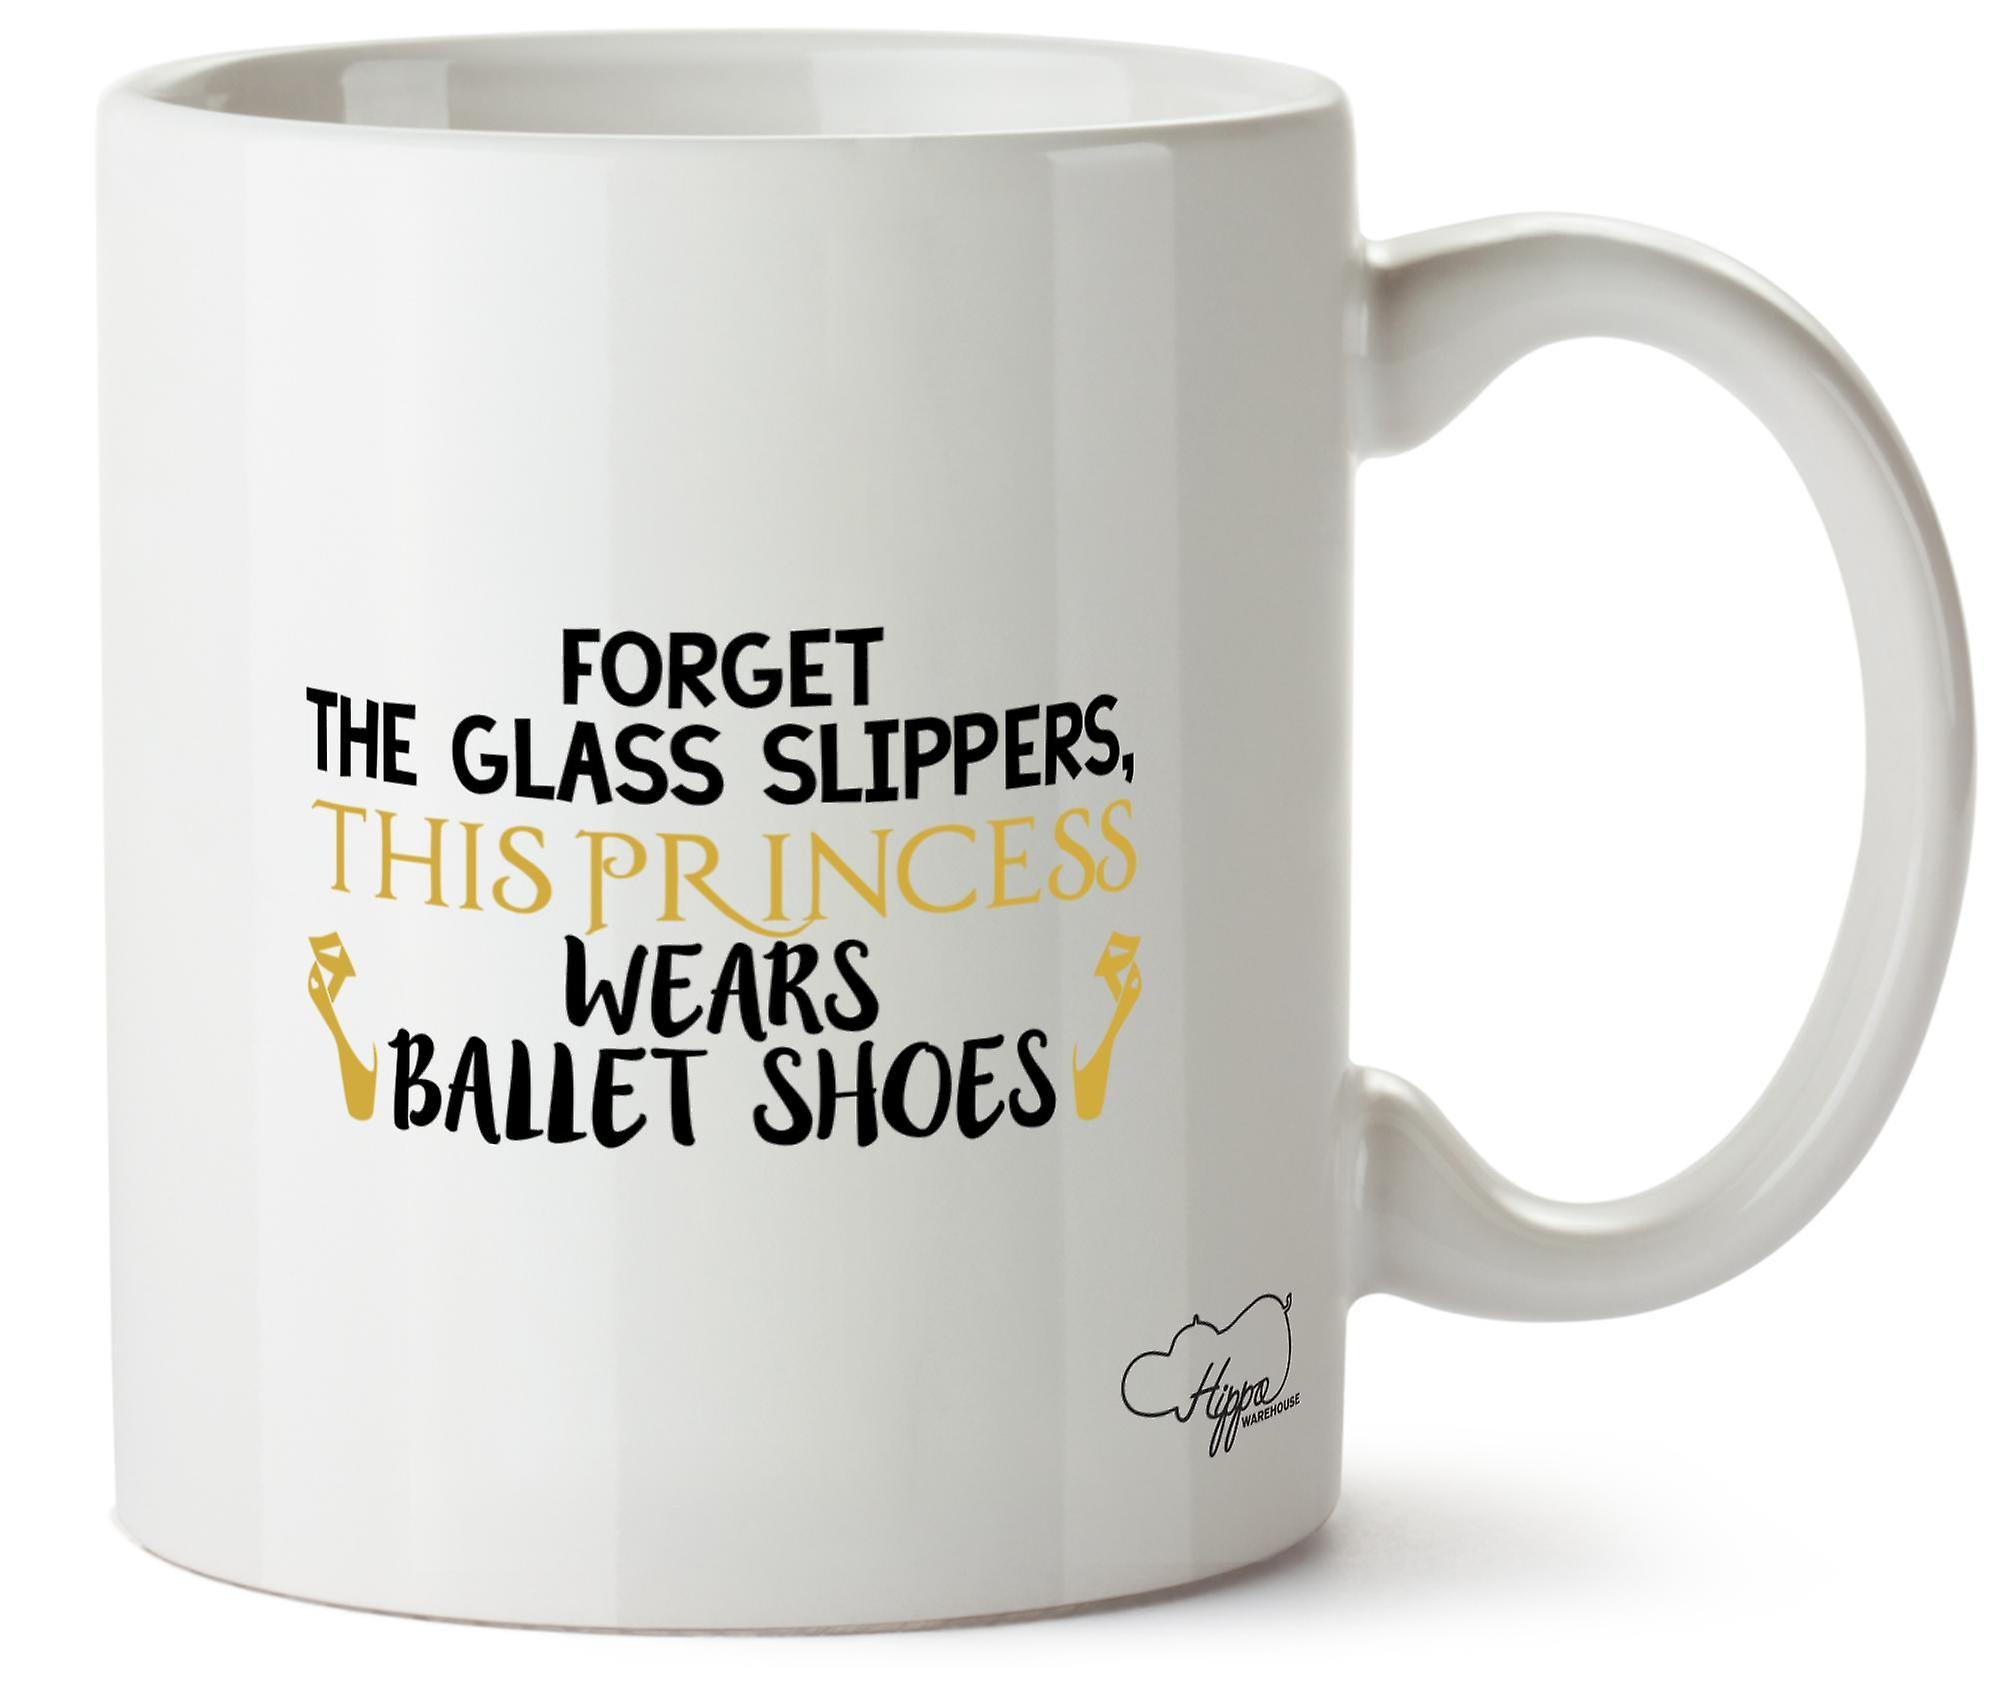 Hippowarehouse Forget The Glass Slippers, This Princess Wears Ballet Shoes Printed Mug Cup Ceramic 10oz